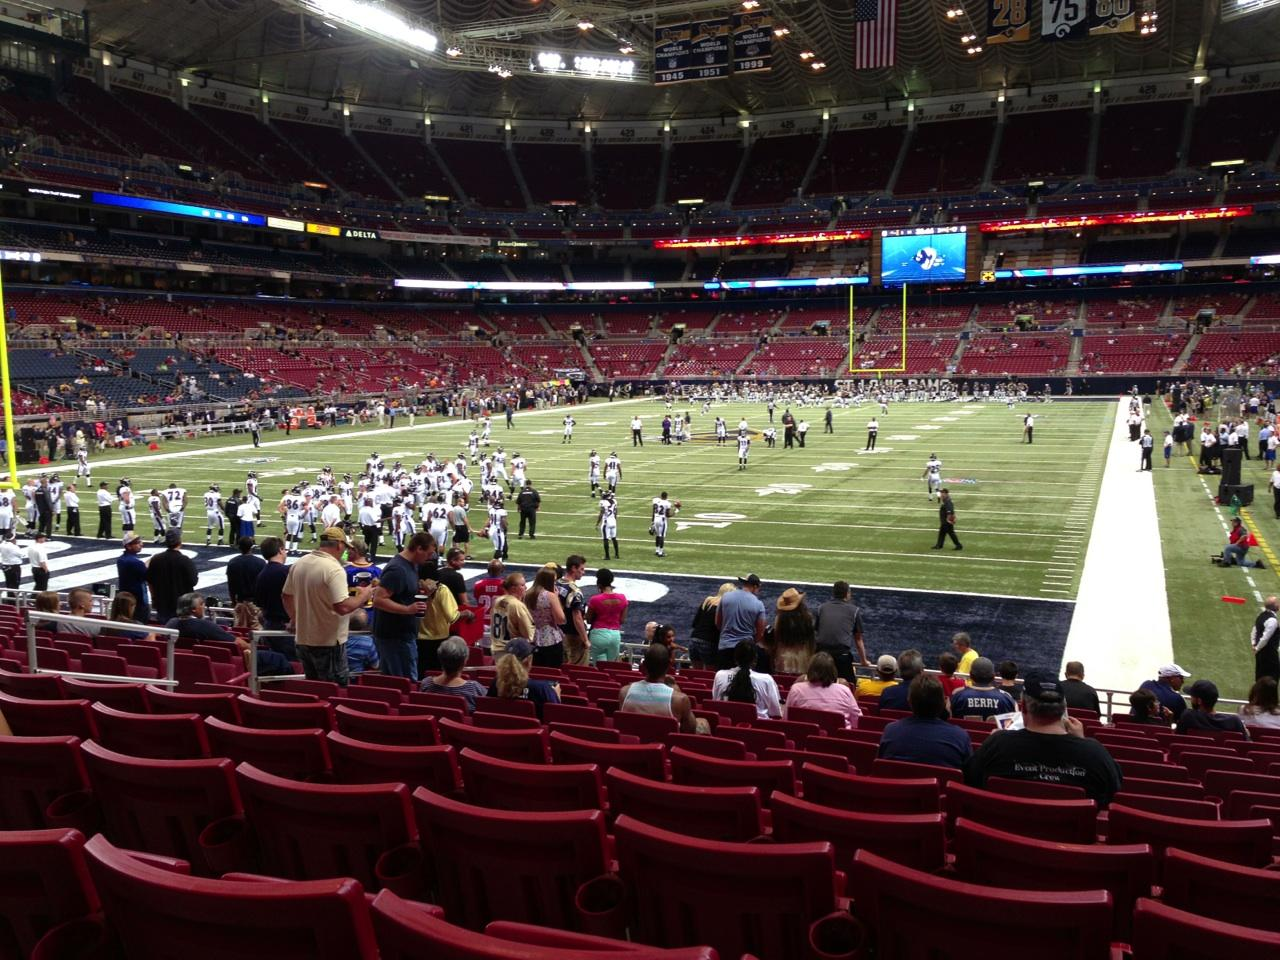 St. Louis Rams Seat View for Edward Jones Dome Section 152, Row Q, Seat 11